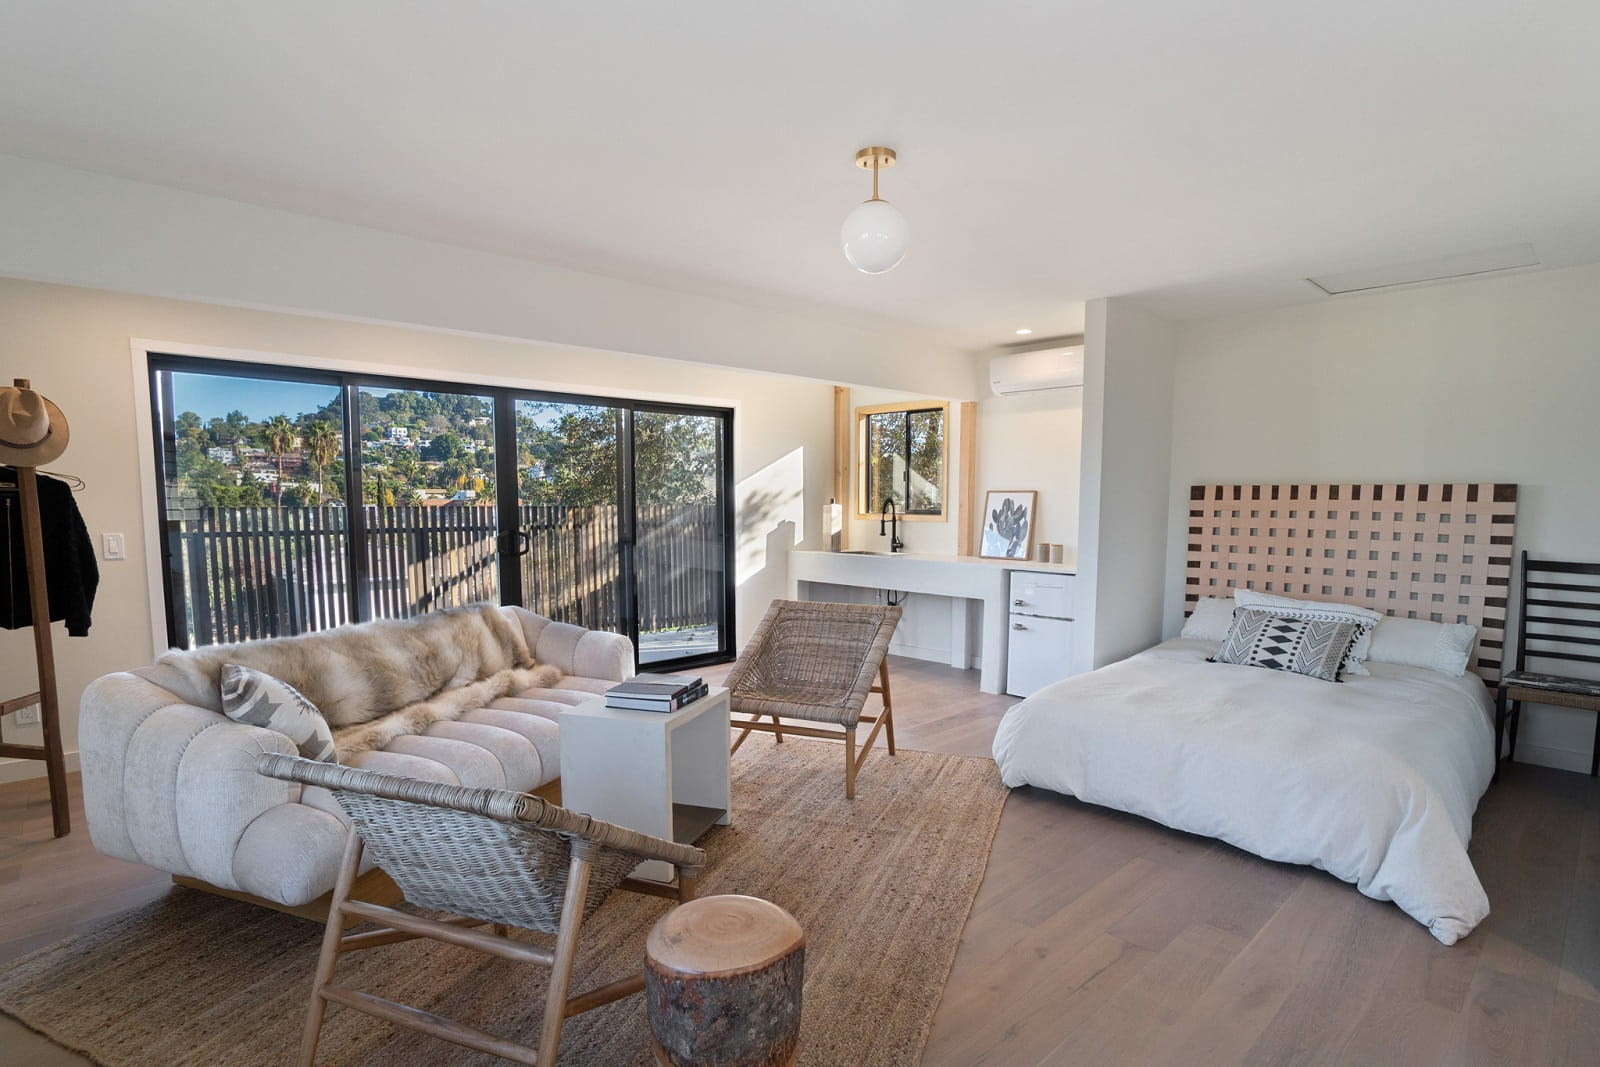 Real Estate Photography in Los Angeles - CA - USA - Bedroom View